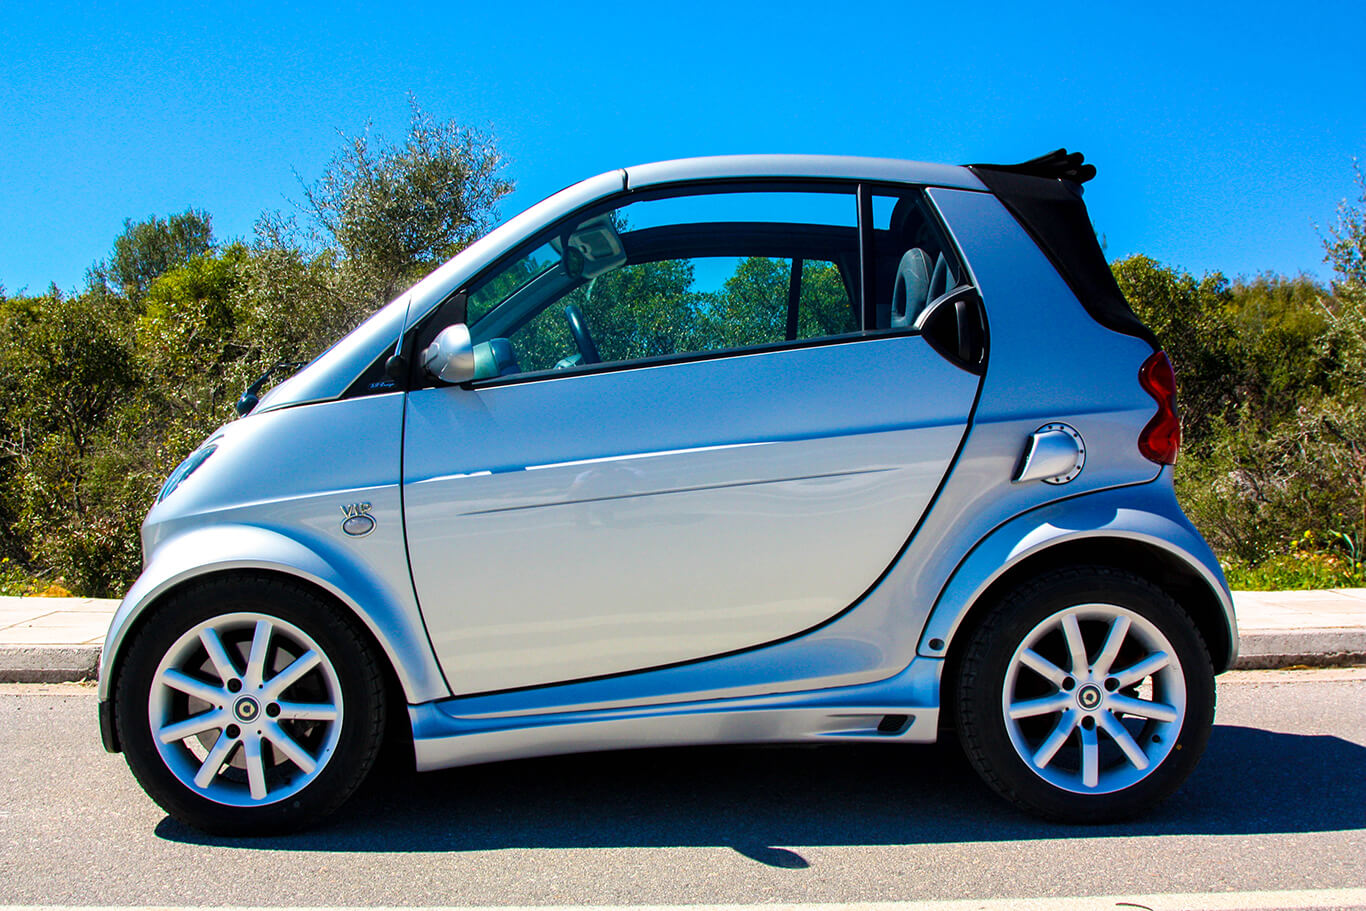 These are the Side Skirts for Smart Fortwo 450 by Smart Power Design. It has also been installed the Side Air Scoop.